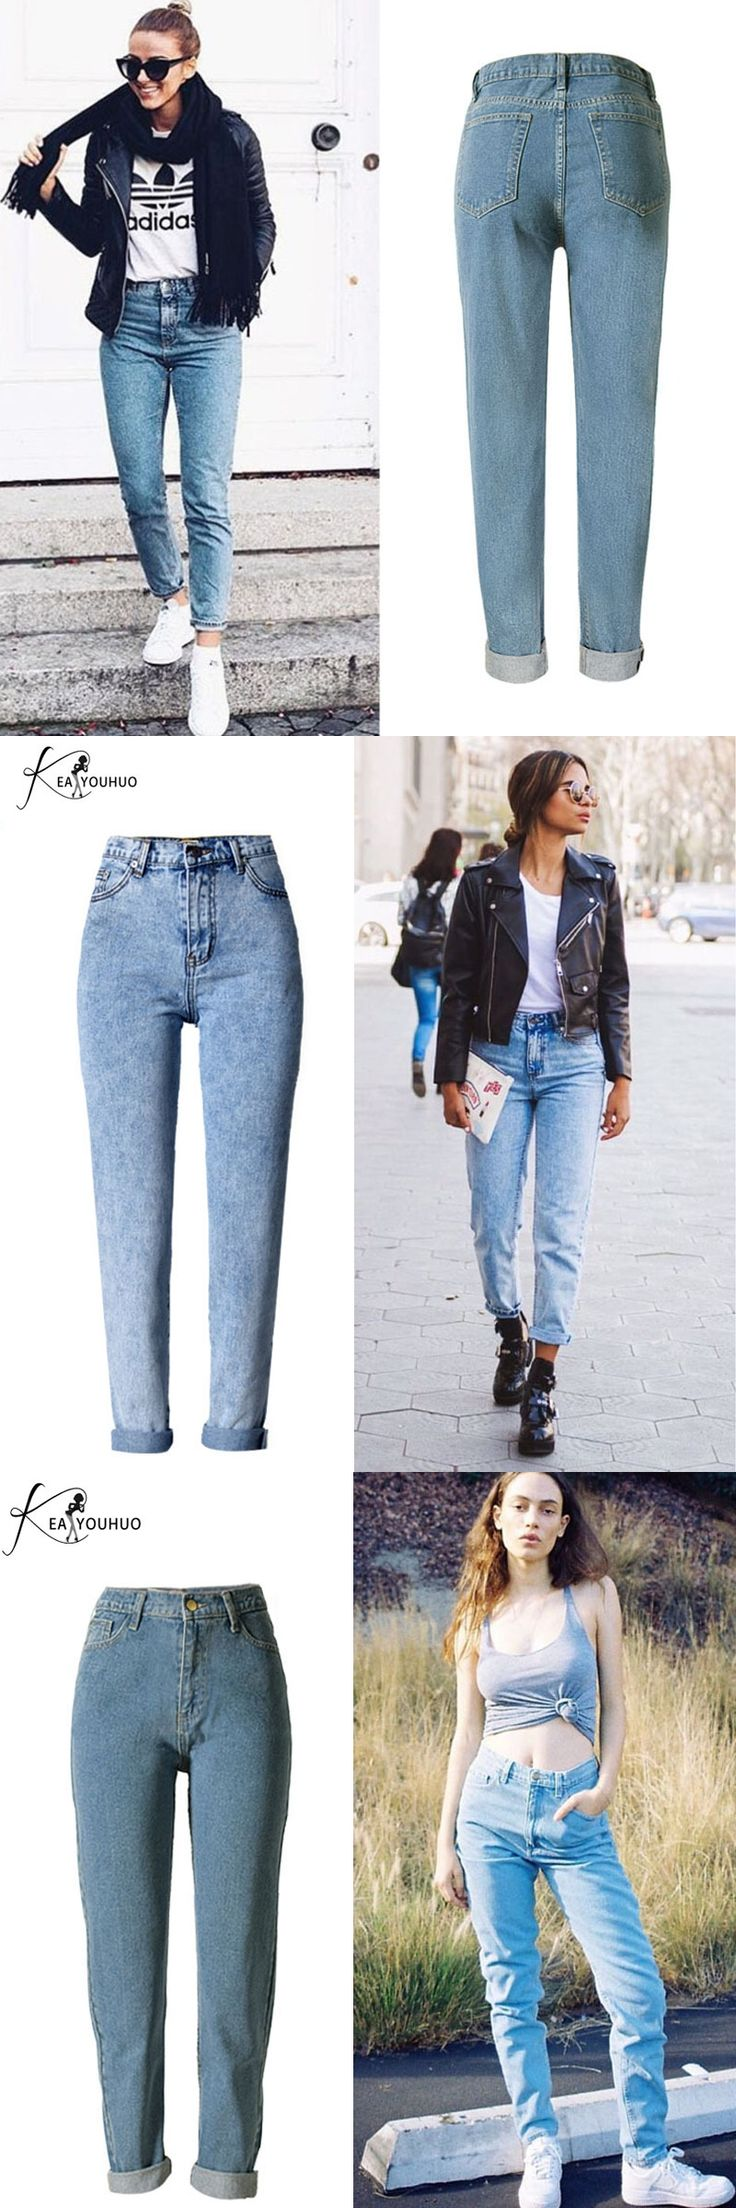 New 2017 Women's Jeans Woman Fashion Ladies Trousers Denim Mom Pants Female With High Waist Ripped Jeans For Women overalls jean